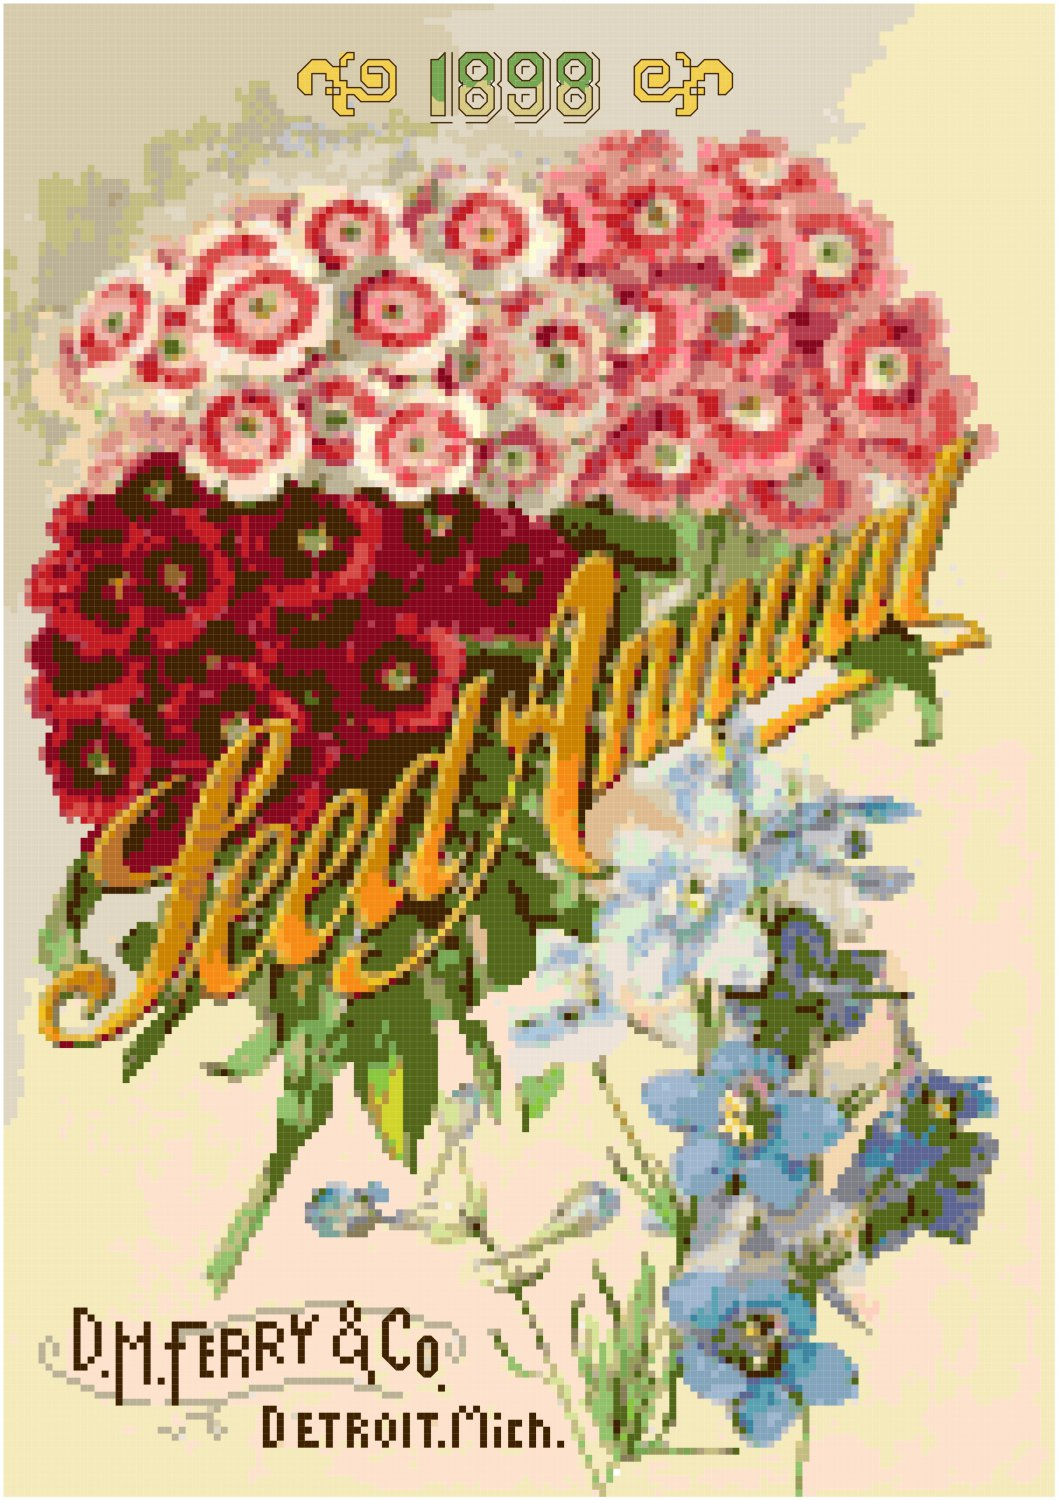 Antique Seed Catalog 1989 Magazine Cover Cross Stitch Pattern Chart Graph